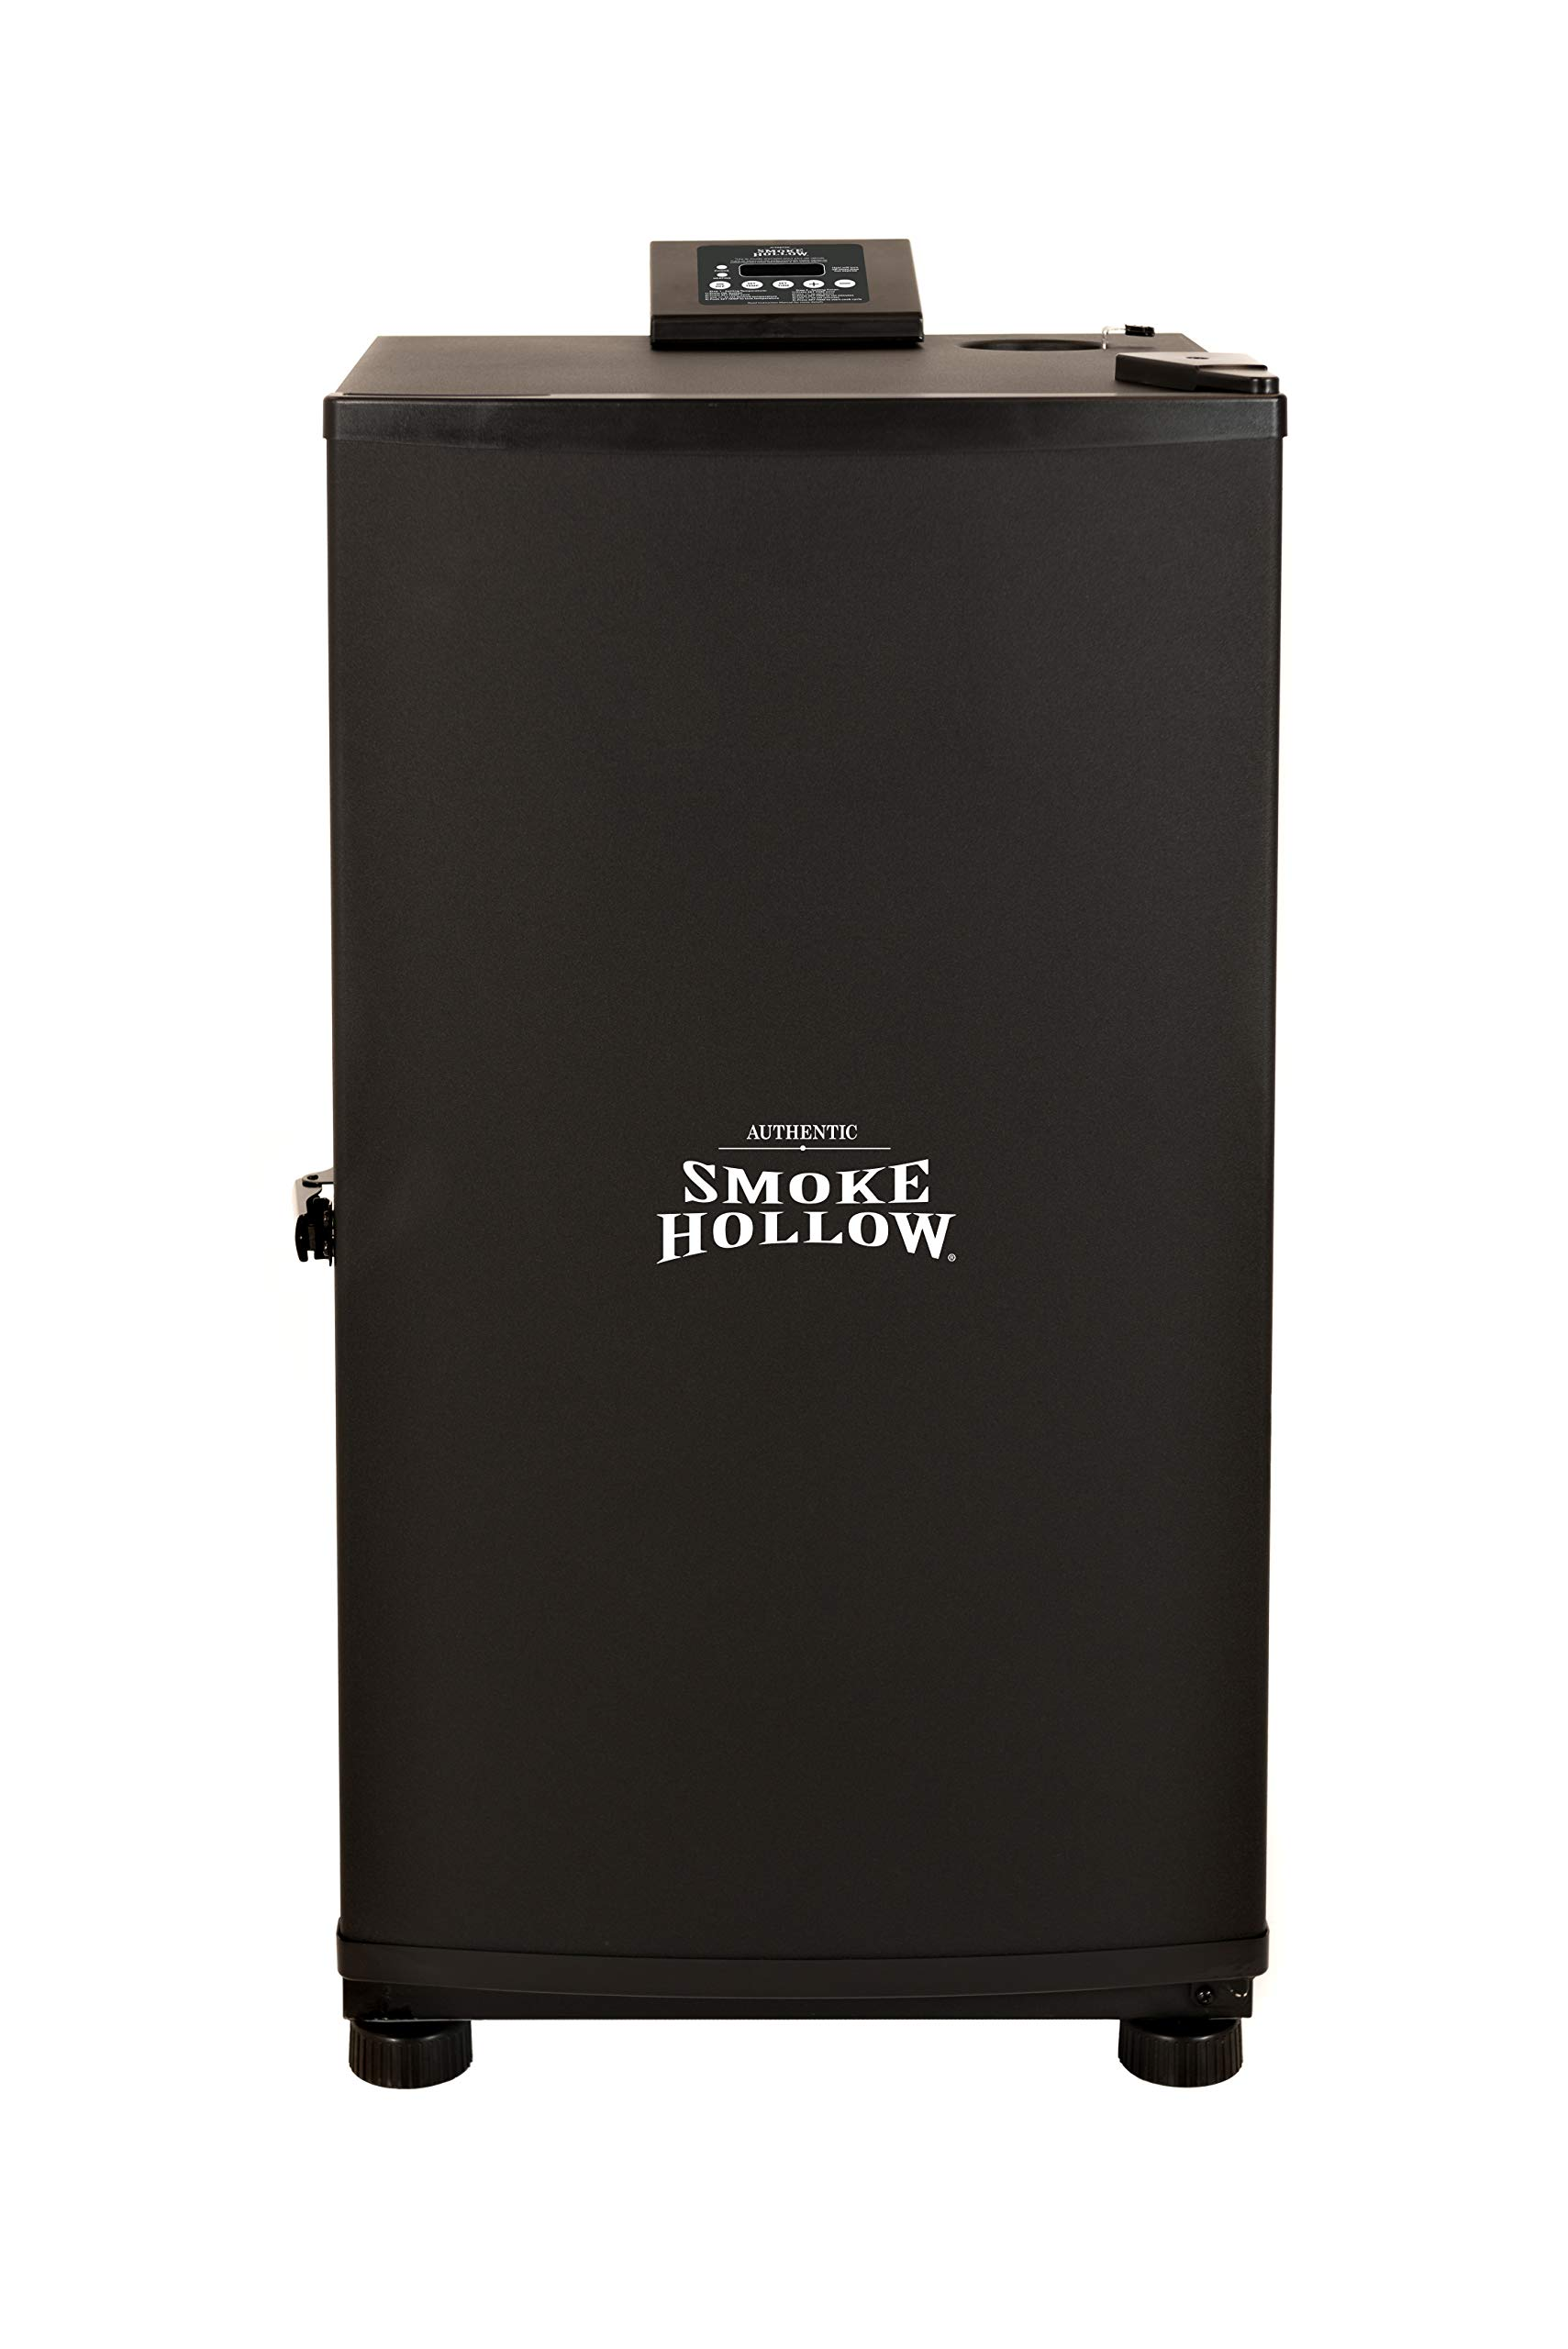 Masterbuilt SH19079518 Smoke Hollow Digital Electric Smoker, Exterior: 17.8 in. H x 16.3 in. W x 19.3 in. L Interior:13.8 in. H x 12.6 in. W x 11.9 in. L, Black by Masterbuilt